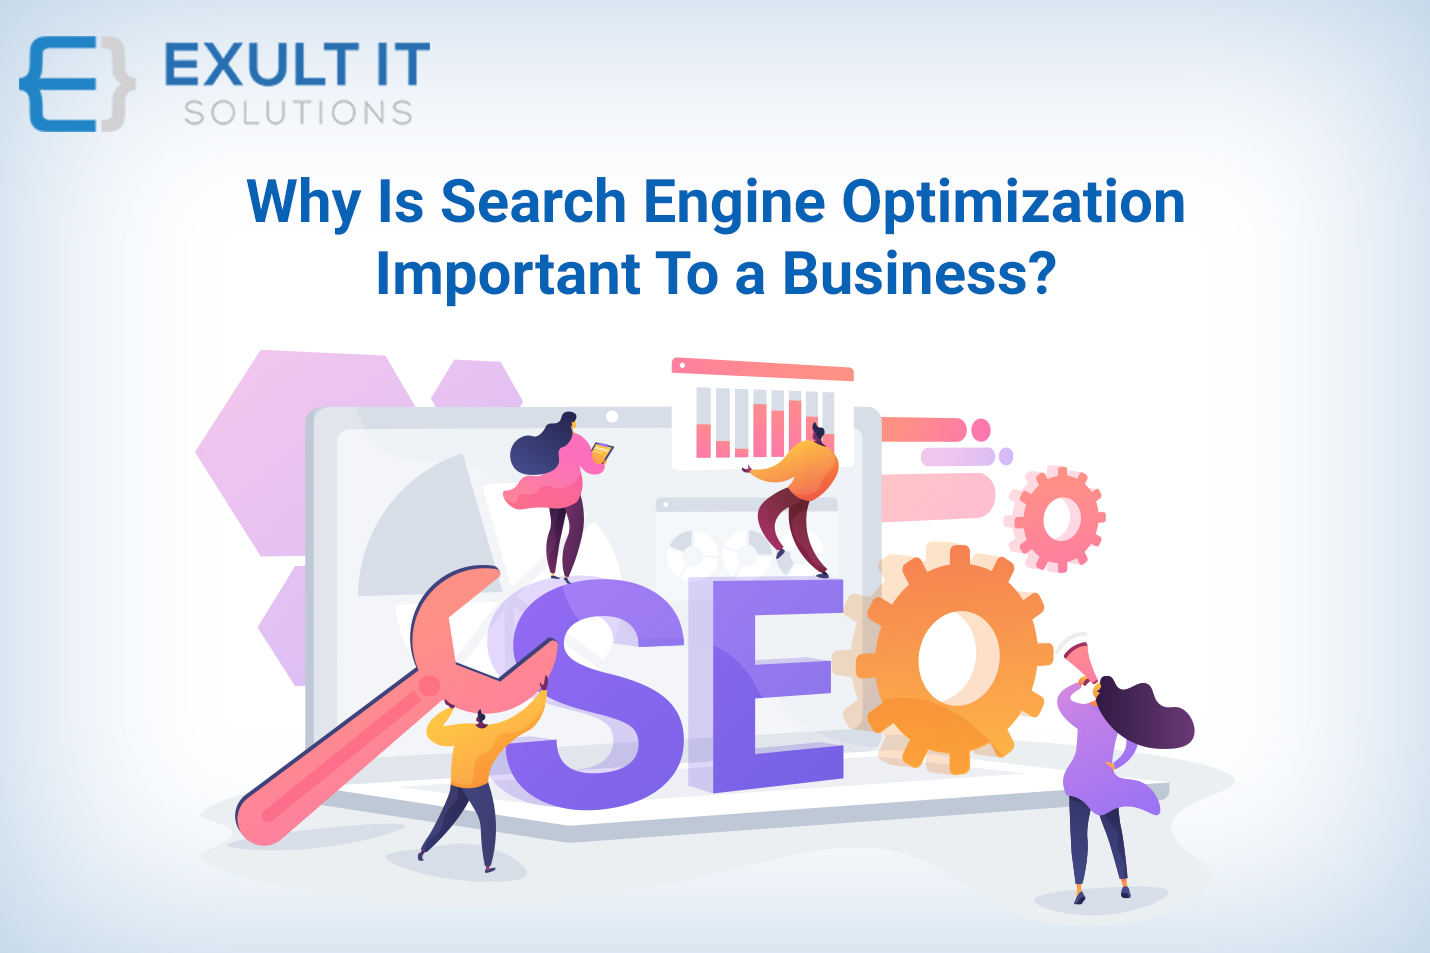 Why Is Search Engine Optimization Important To a Business-Exult IT Solutions